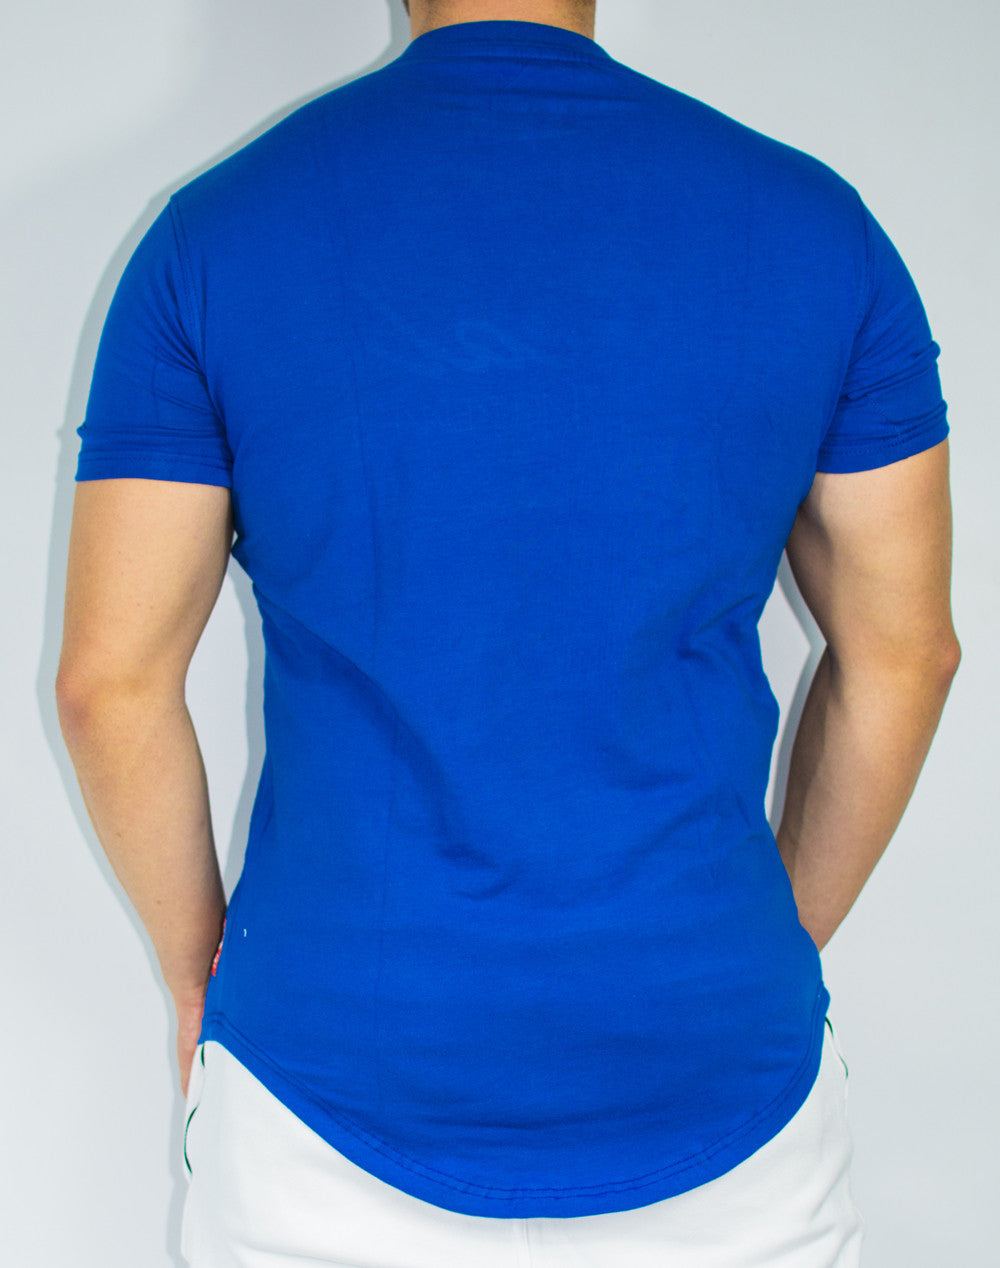 Scal Casual Tee - Royal Blue - Scal Clothing